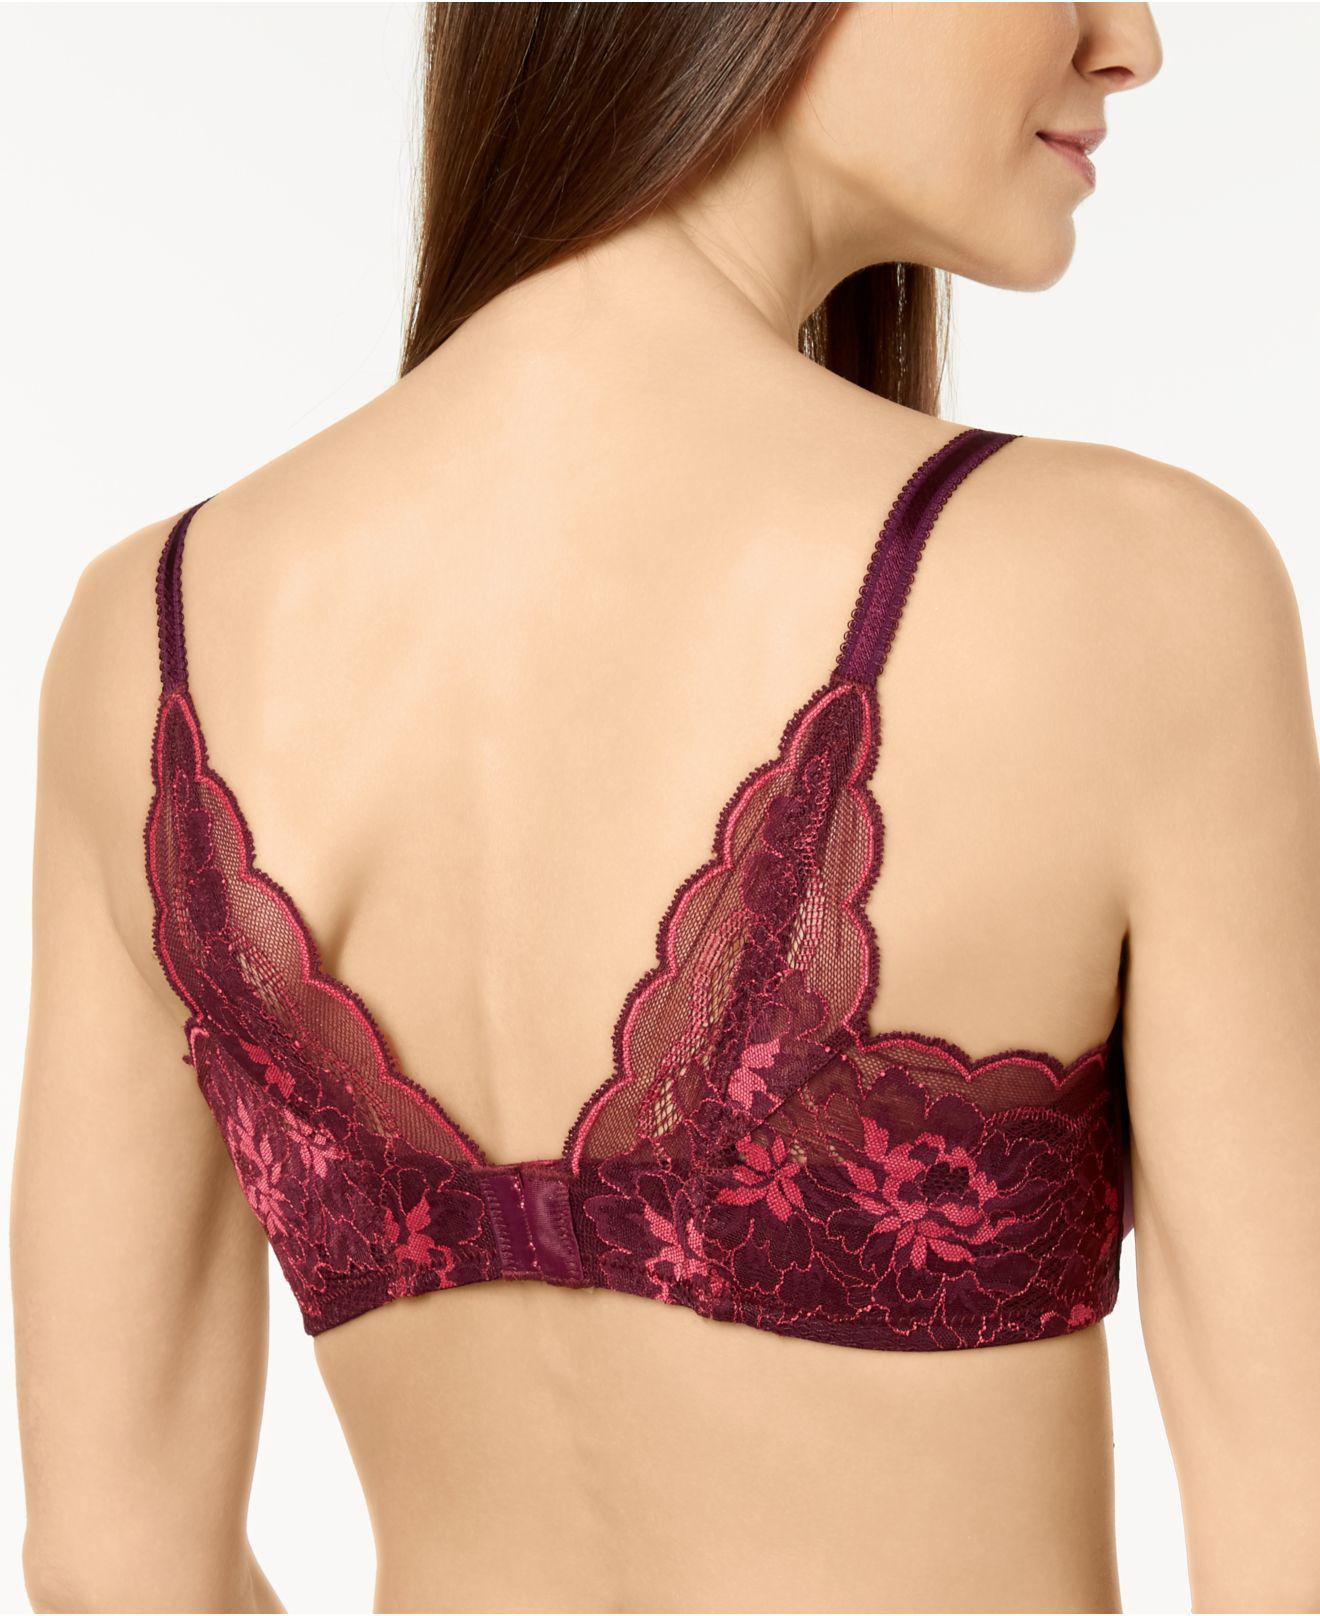 a350102fe7d35 Lyst - Wacoal Fire And Lace Contour Bra 853252 in Purple - Save 44%